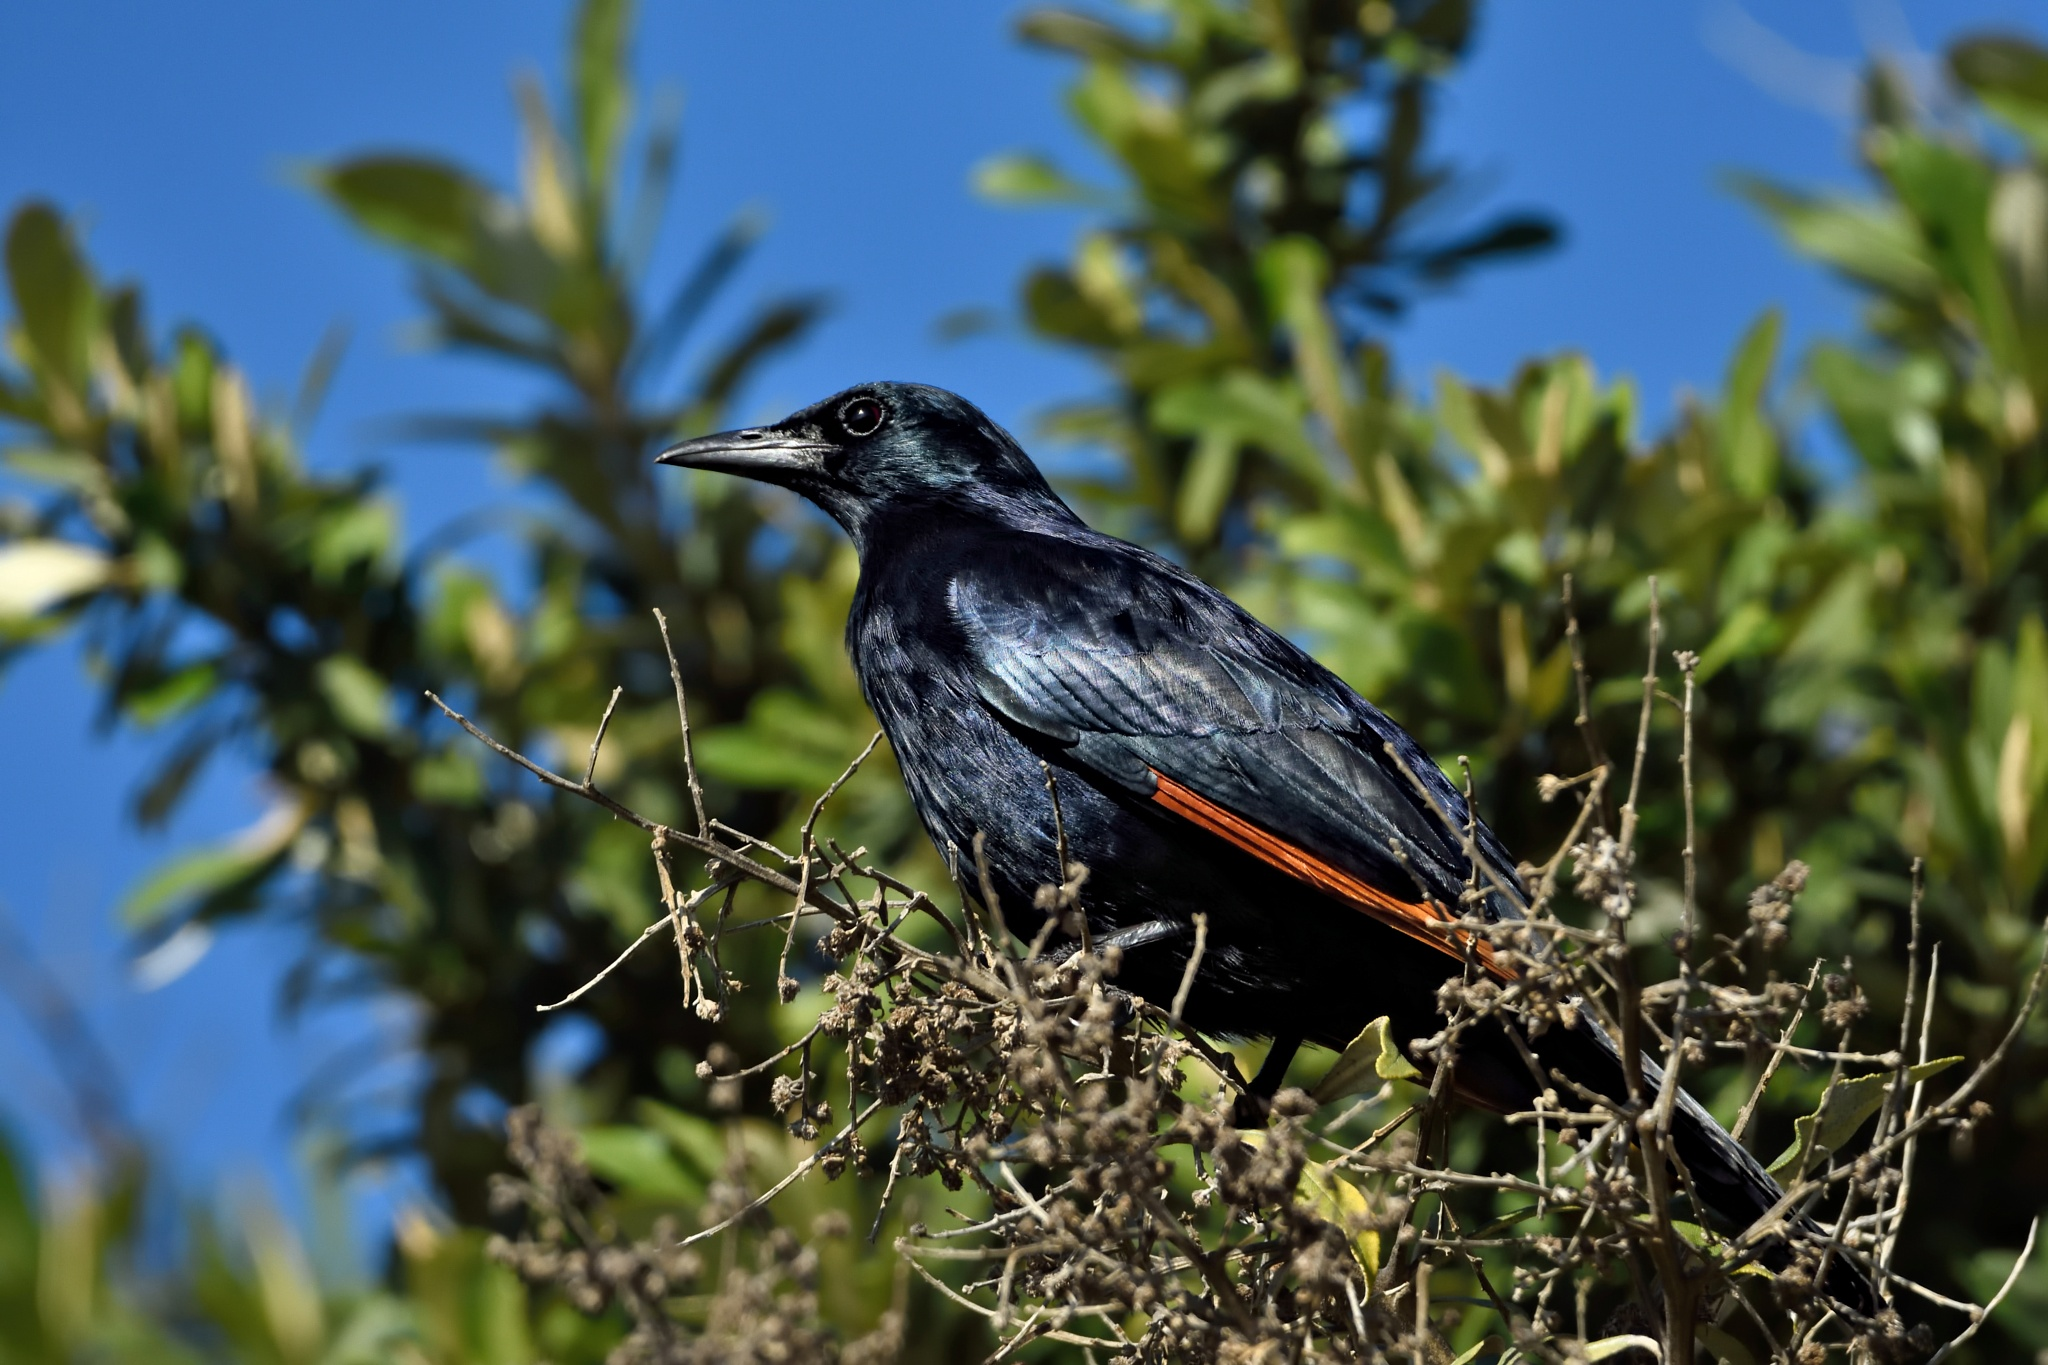 Red-winged starling by miwwim